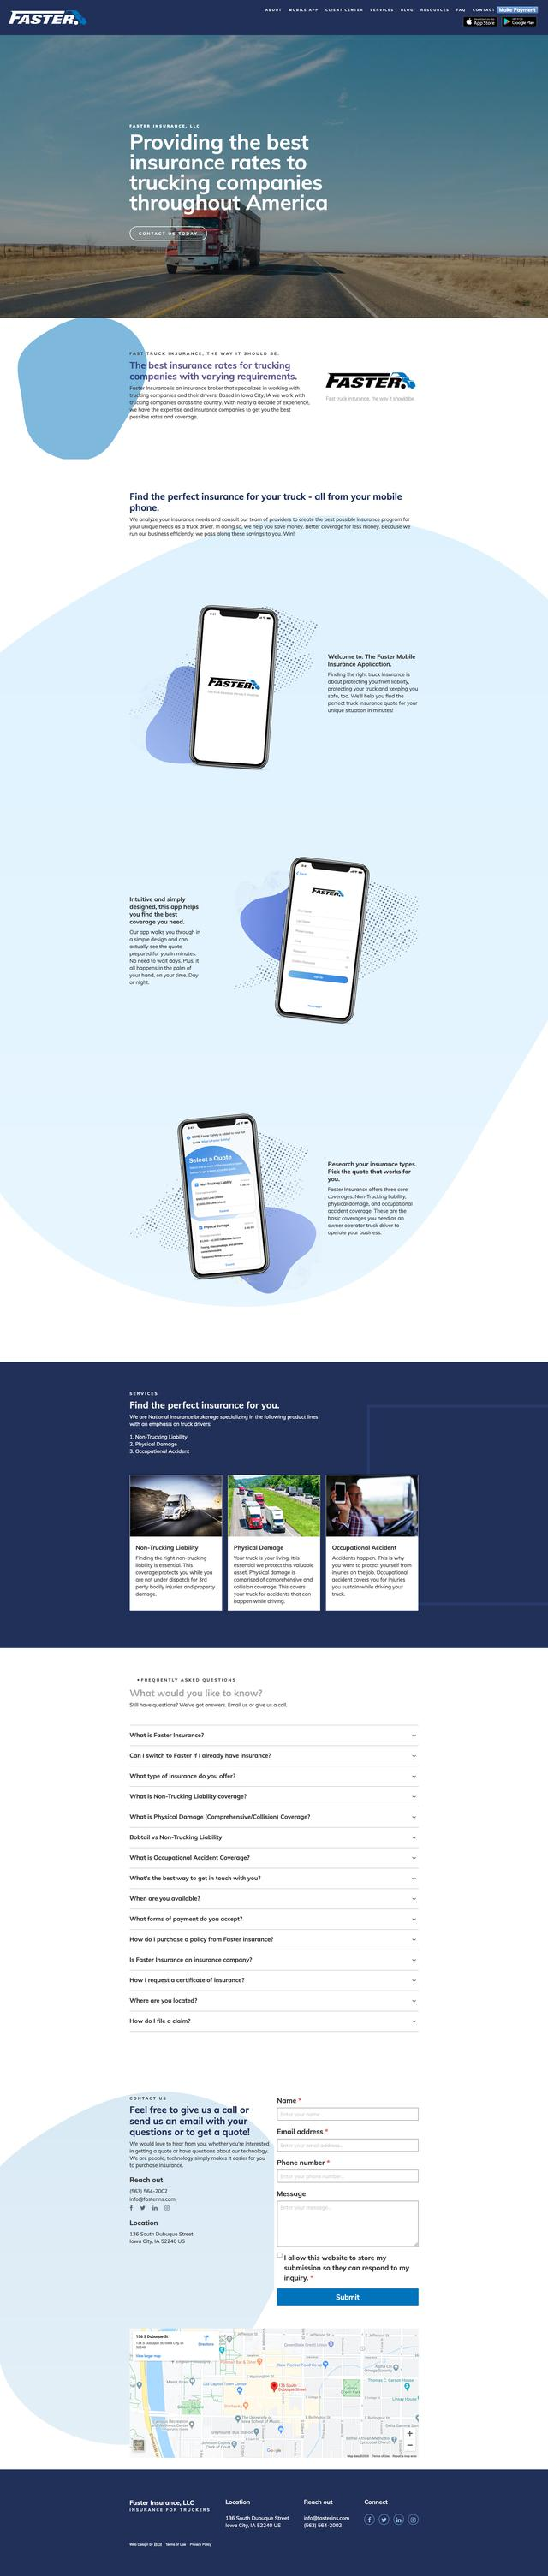 screenshot_2020-05-13 faster insurance, llc - top insurance for truckers.jpg